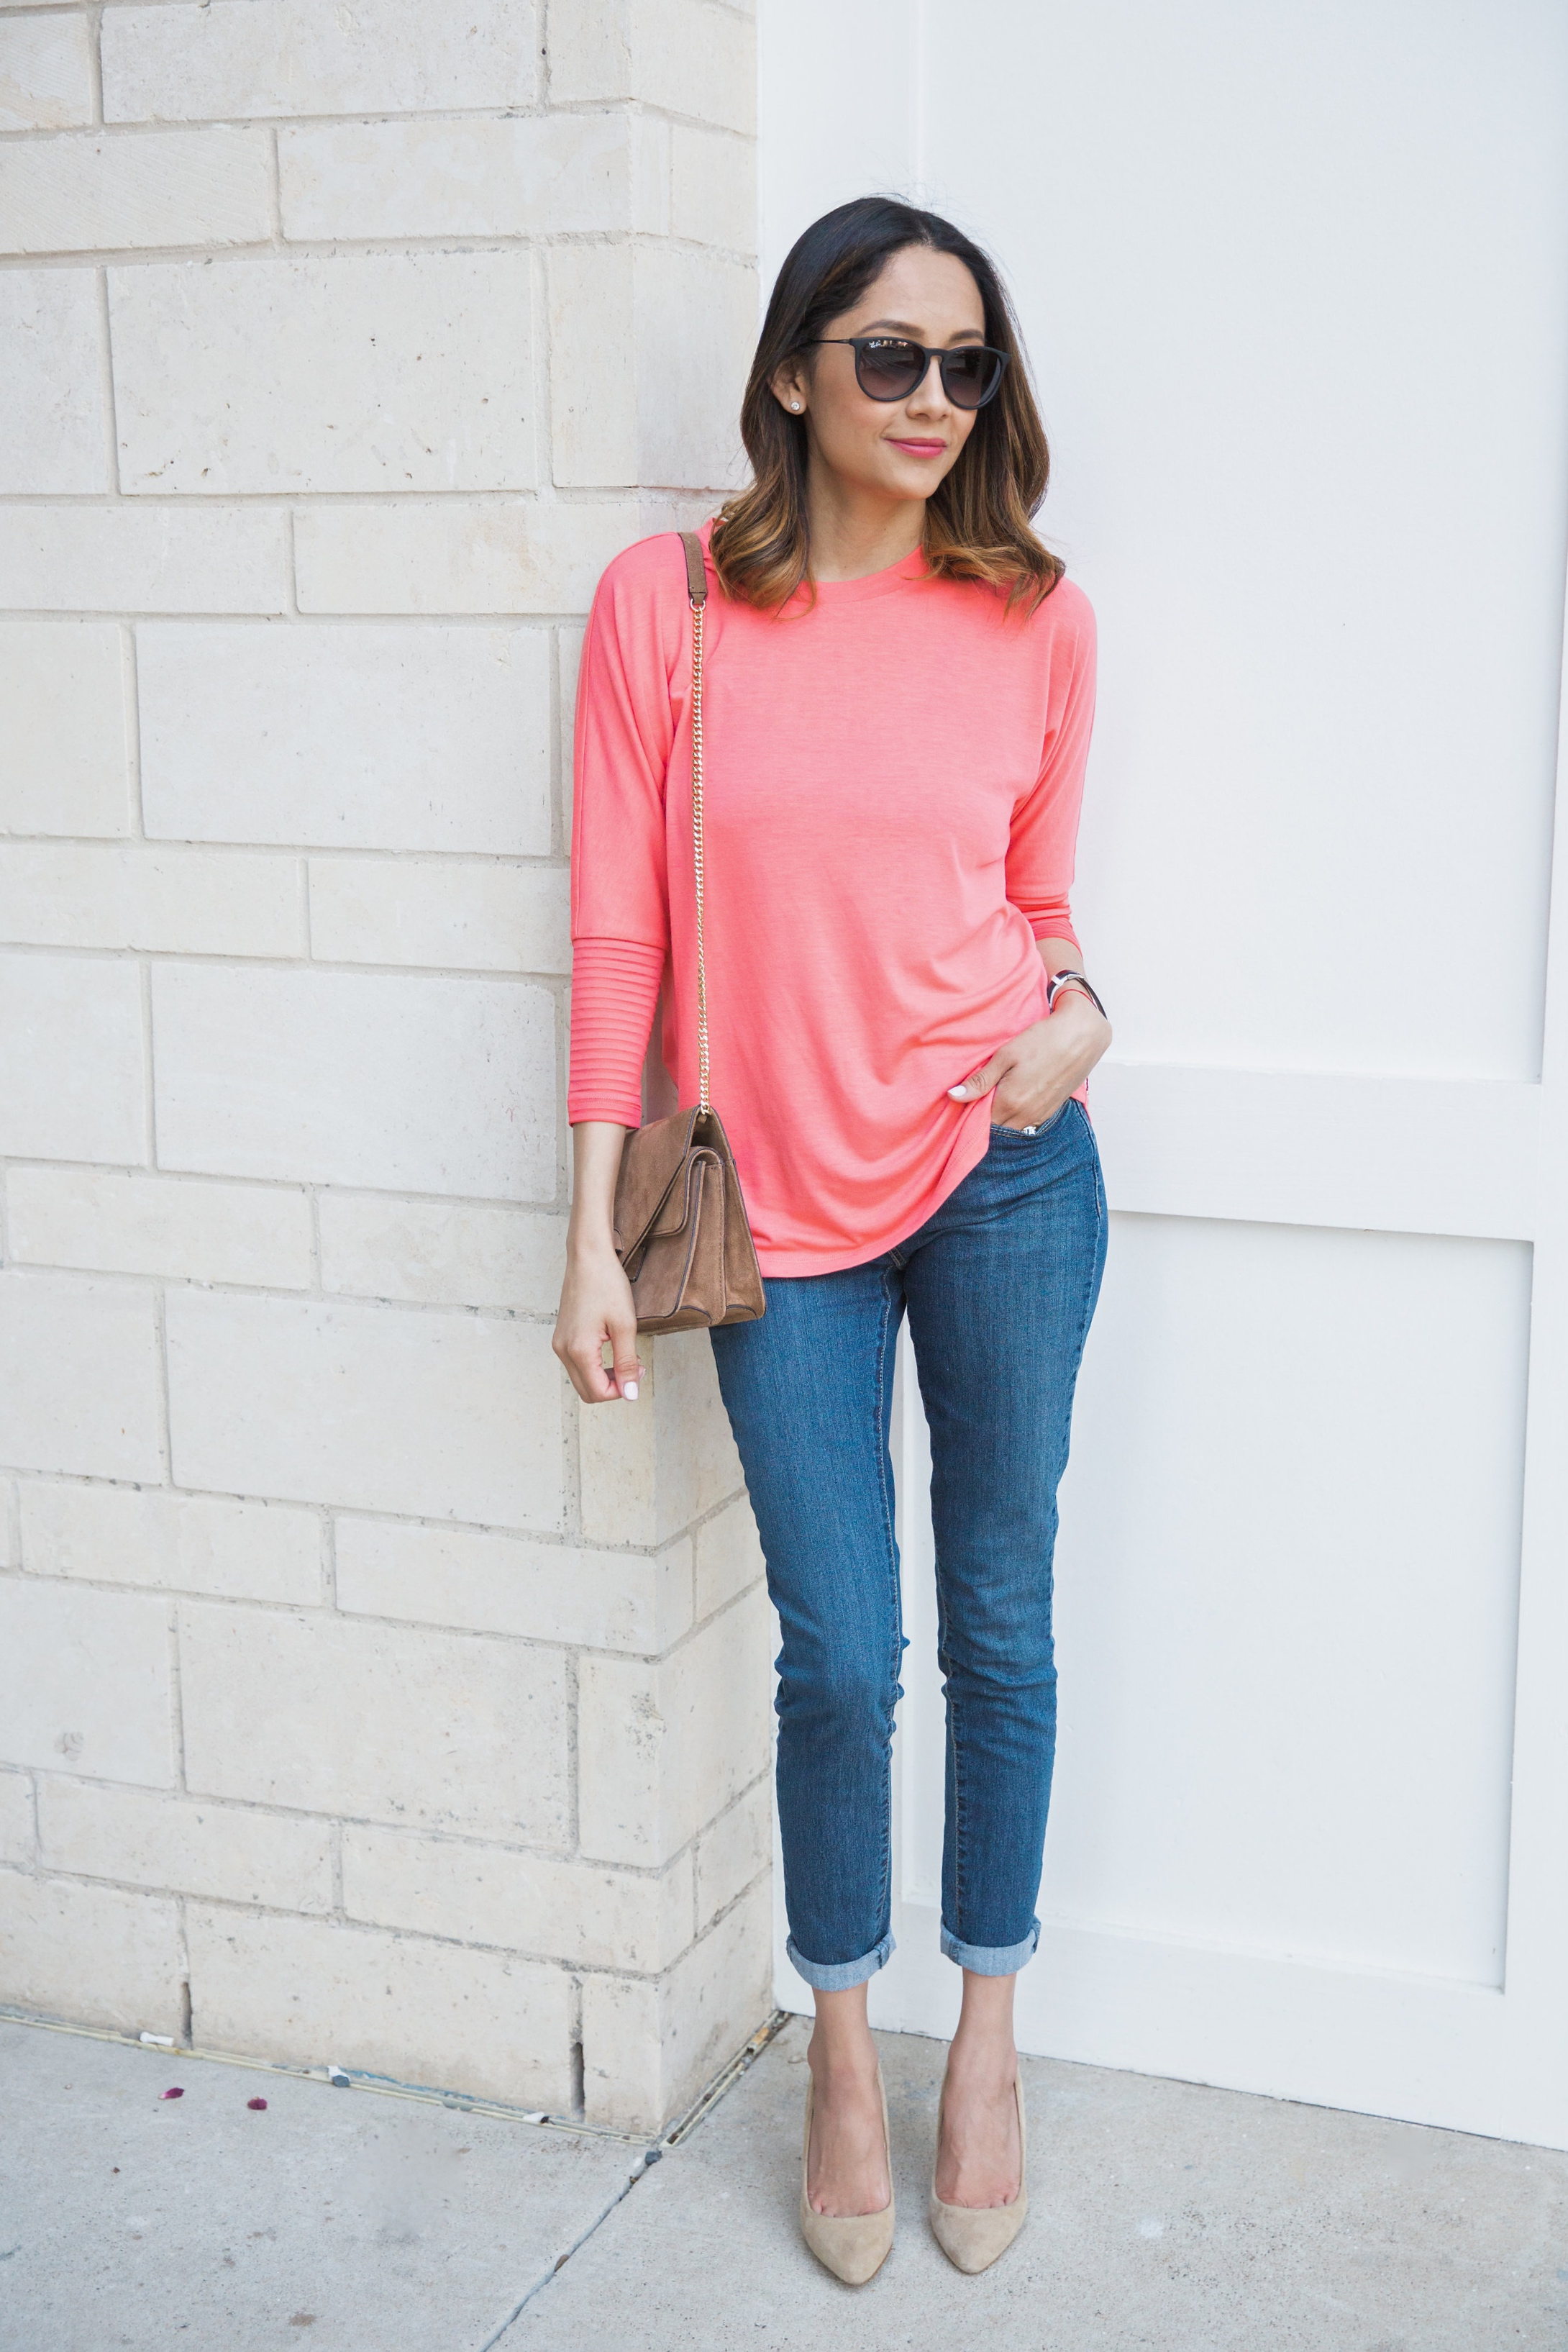 Lifestyle blogger Lilly Beltran of Daily Craving wearing cuffed mom jeans nude heels and a basic long sleeve tee